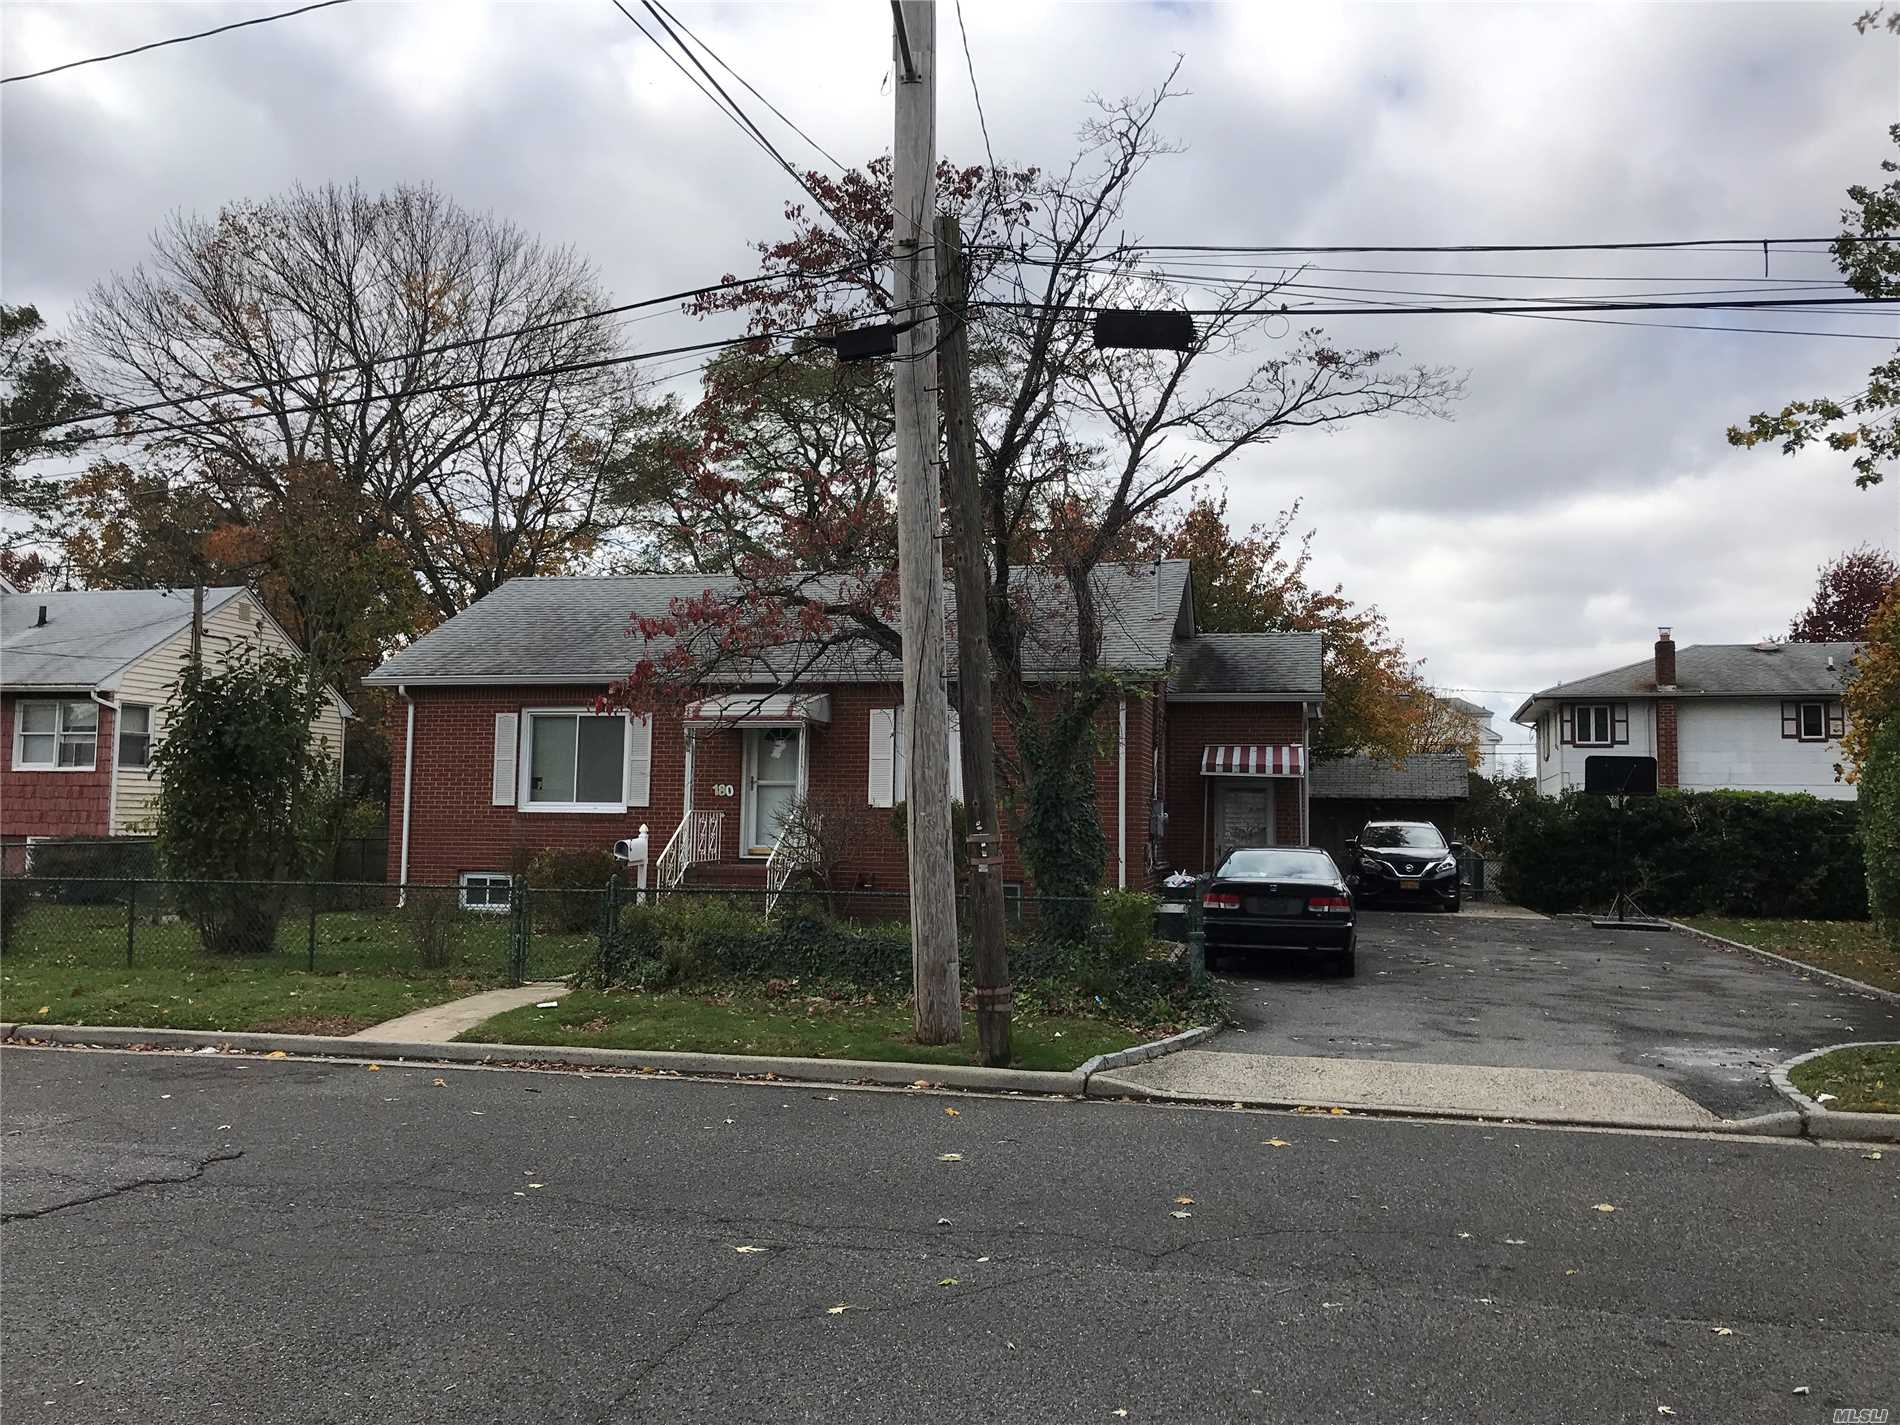 180 Newport Rd - Uniondale, New York